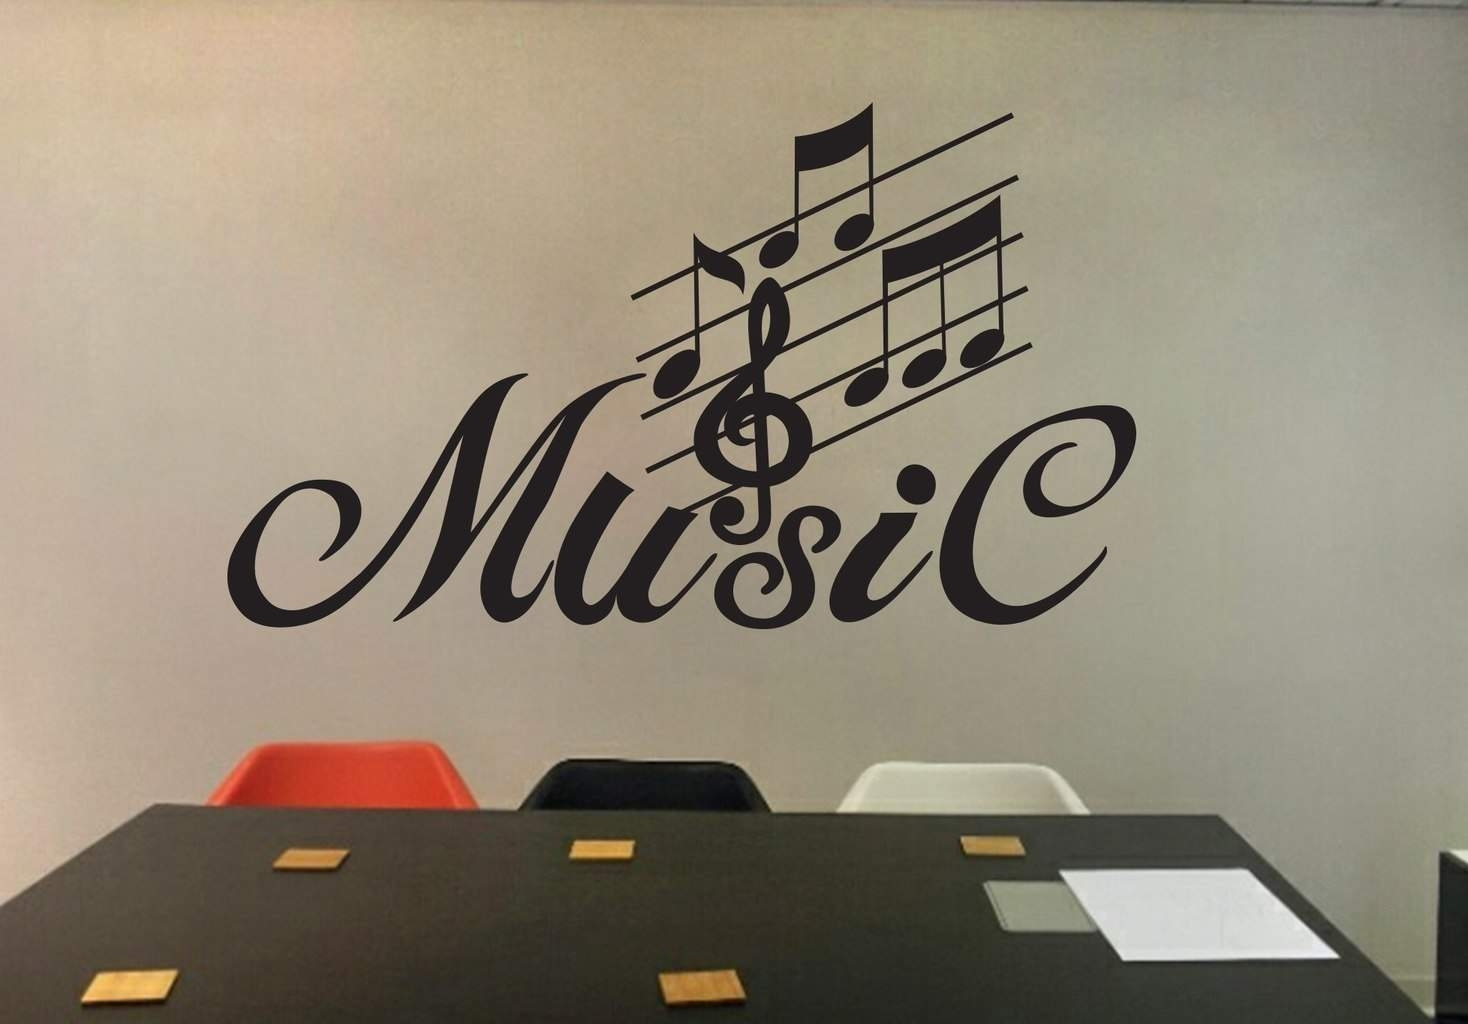 Music Wall Art Decal | Wall Decal | Wall Art Decal Sticker With Regard To Newest Music Wall Art (View 6 of 15)